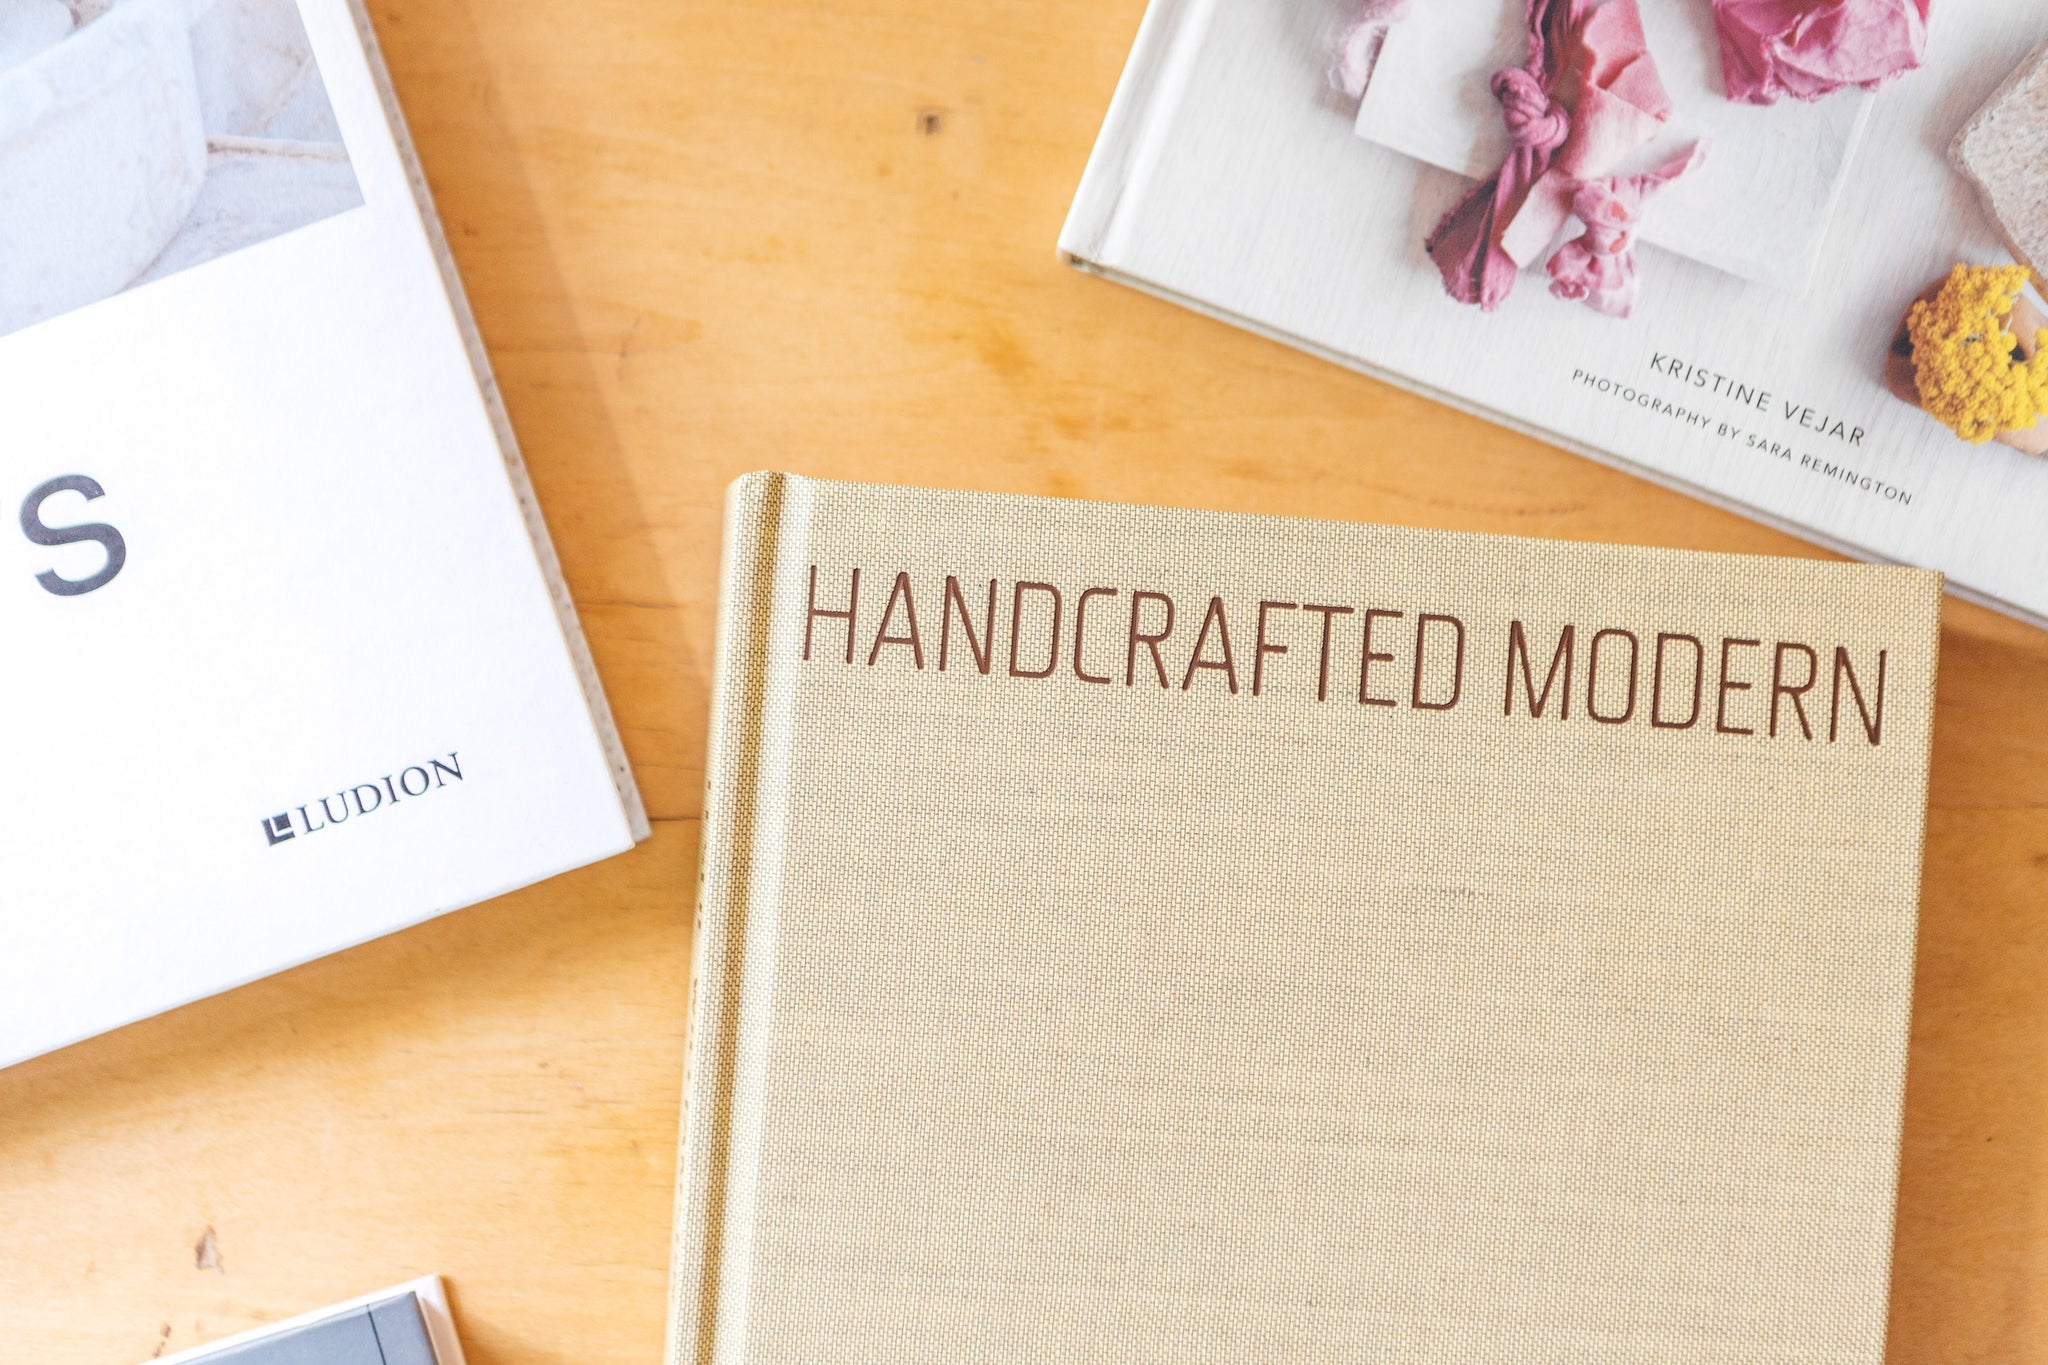 Handcrafted Modern